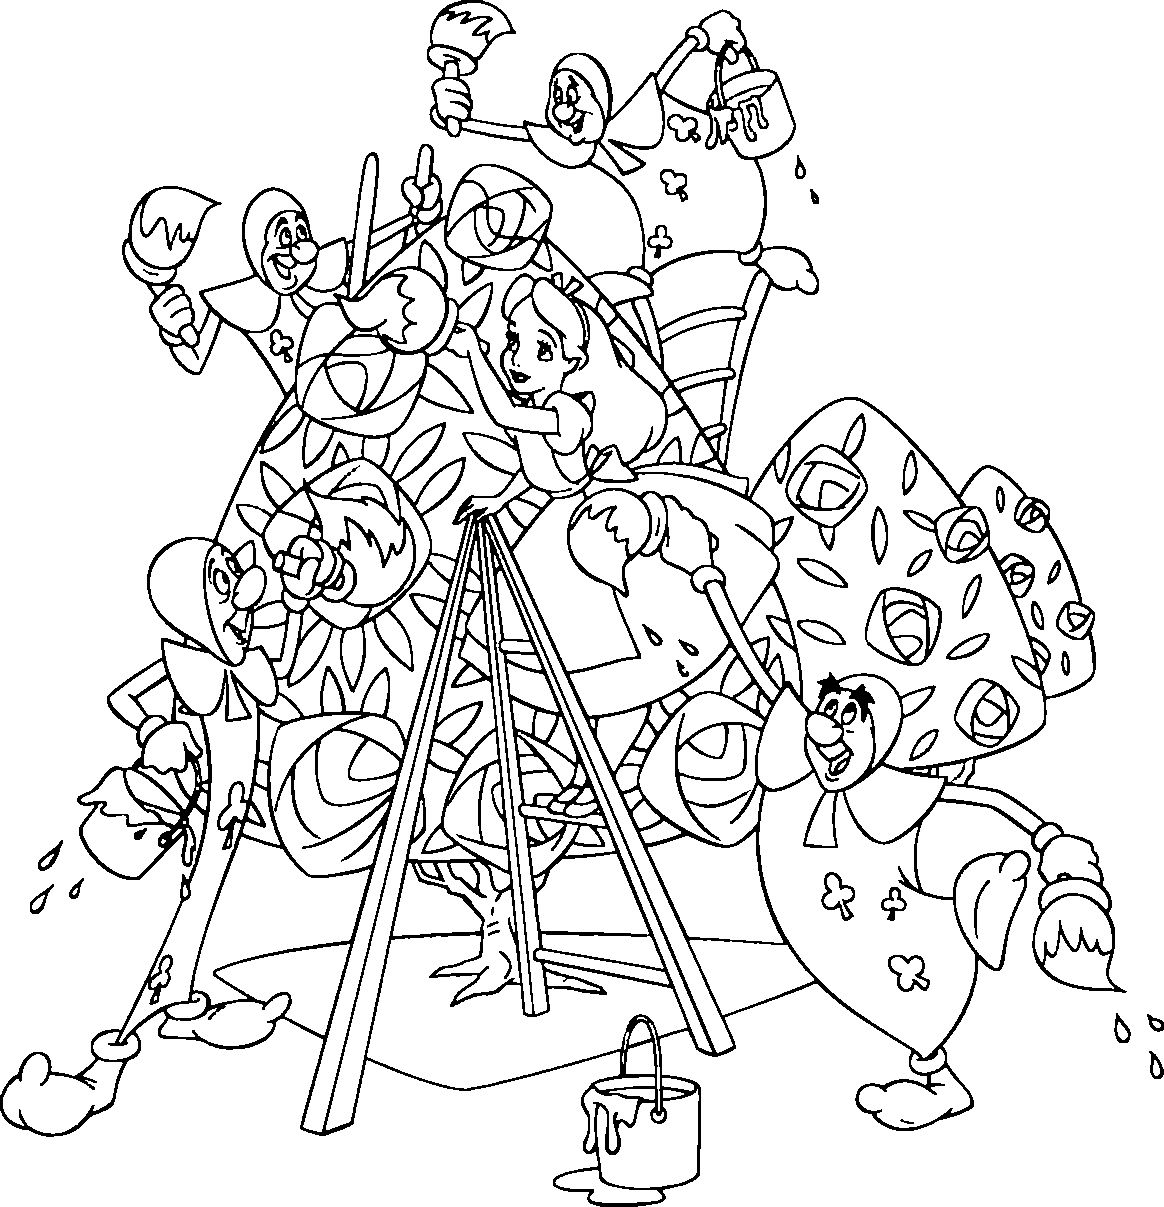 Disney coloring pages for adults - Alice In Wonderland Coloring Pages 25 Best Wallpaper Picture Image Or Photo